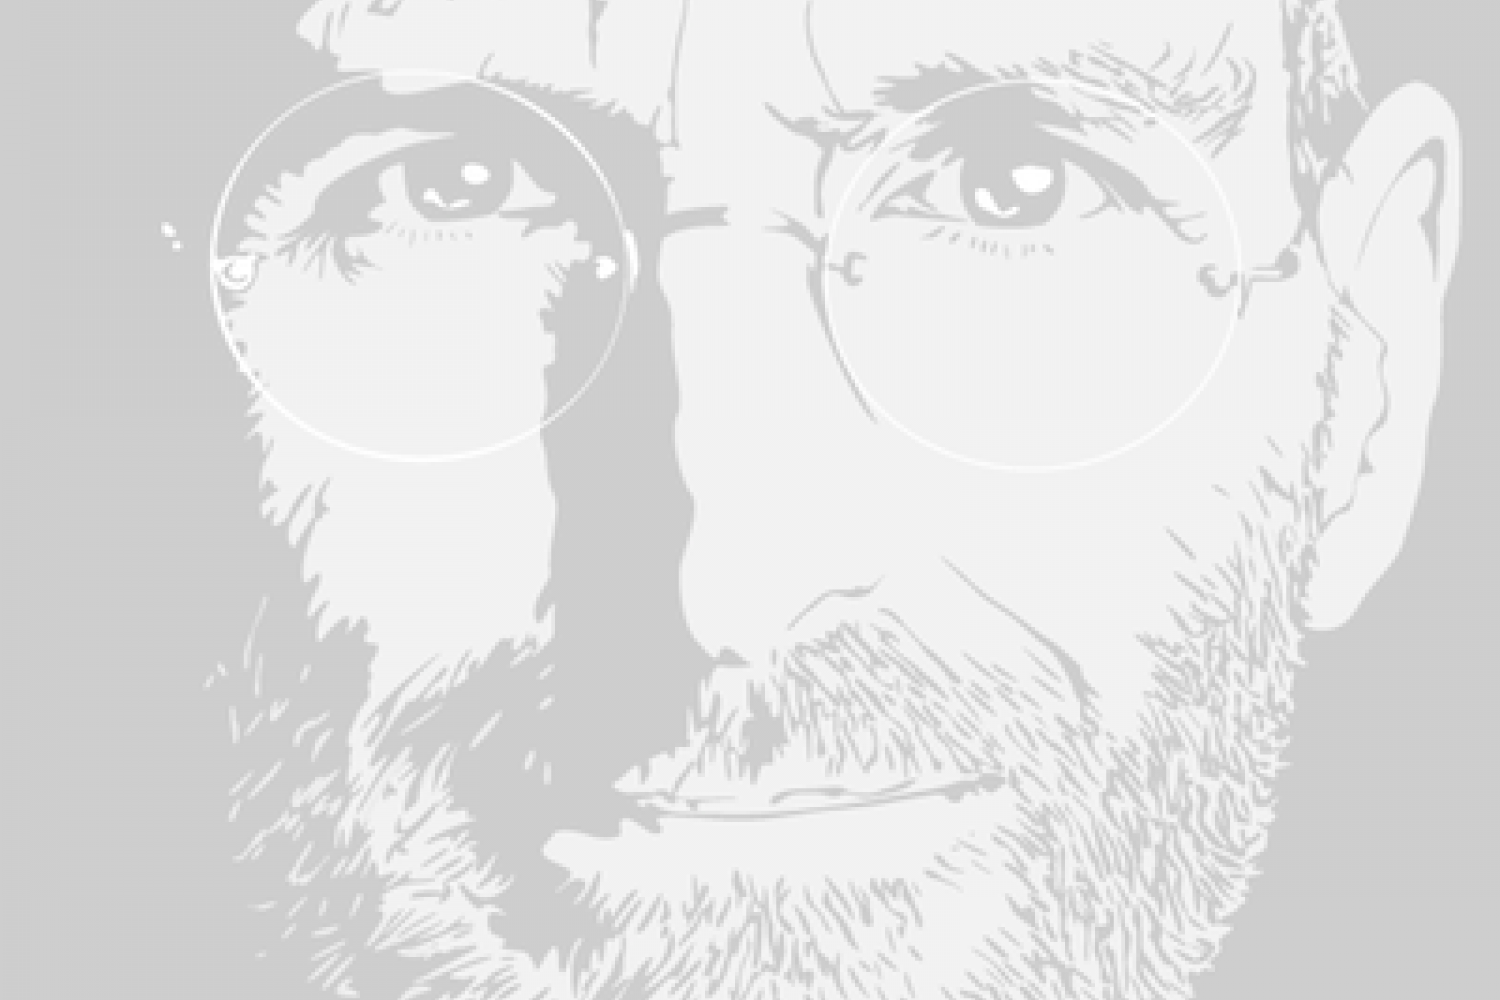 Vision Without Obstruction: What We Learn From Steve Jobs